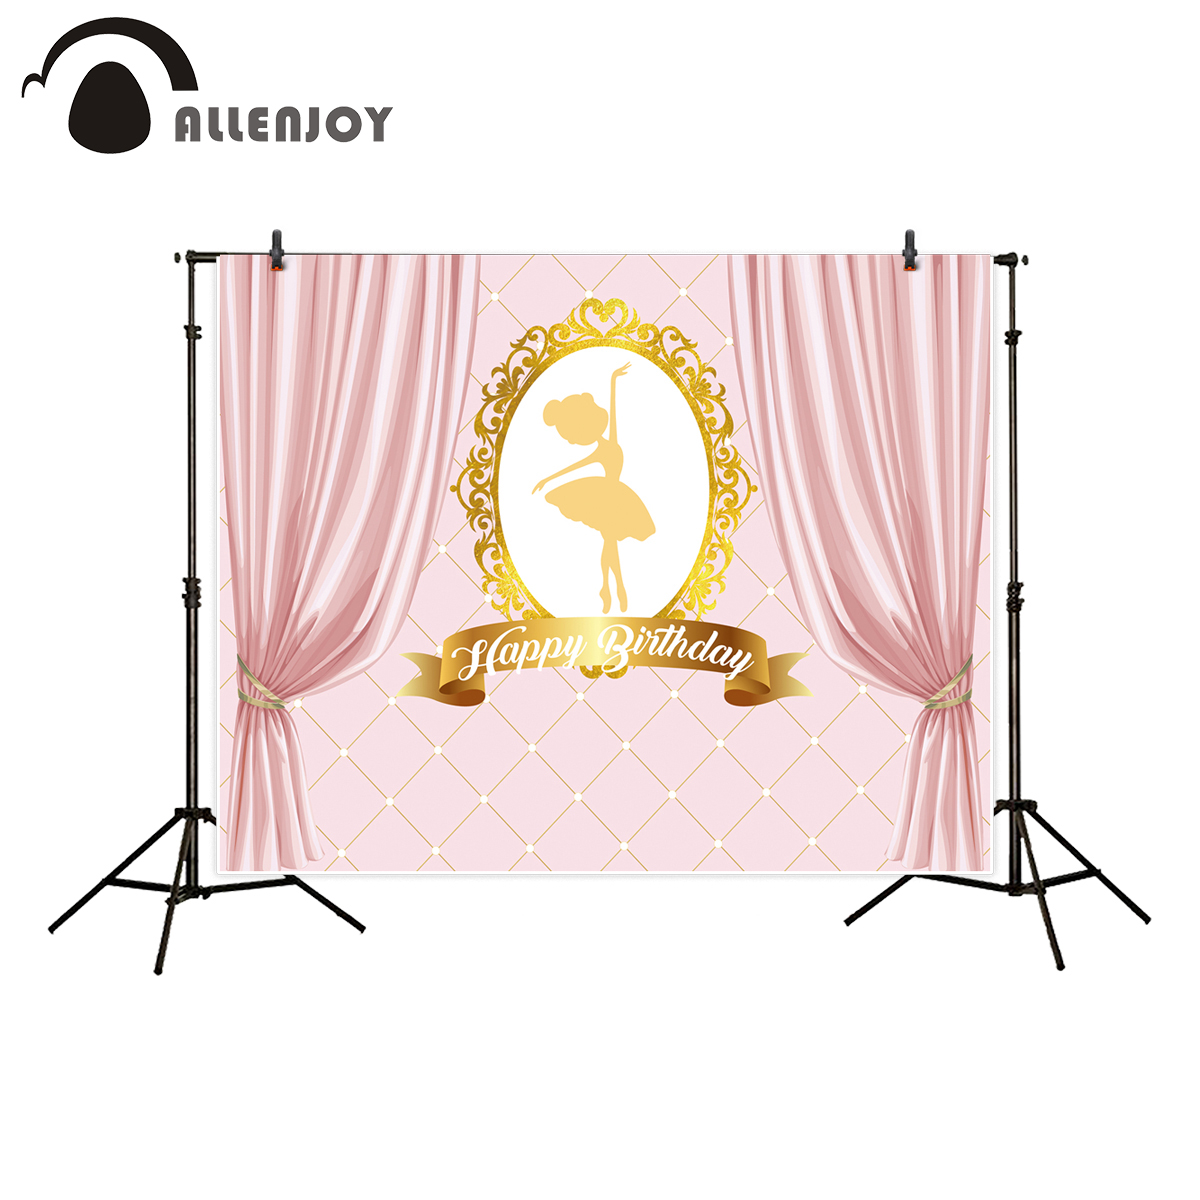 Allenjoy background for photo studio Ballerina girl theme birthday party pink photography backdrop printed new pink floor vinyl photography background for newborn party oxford backdrop for children photo studio props 2868